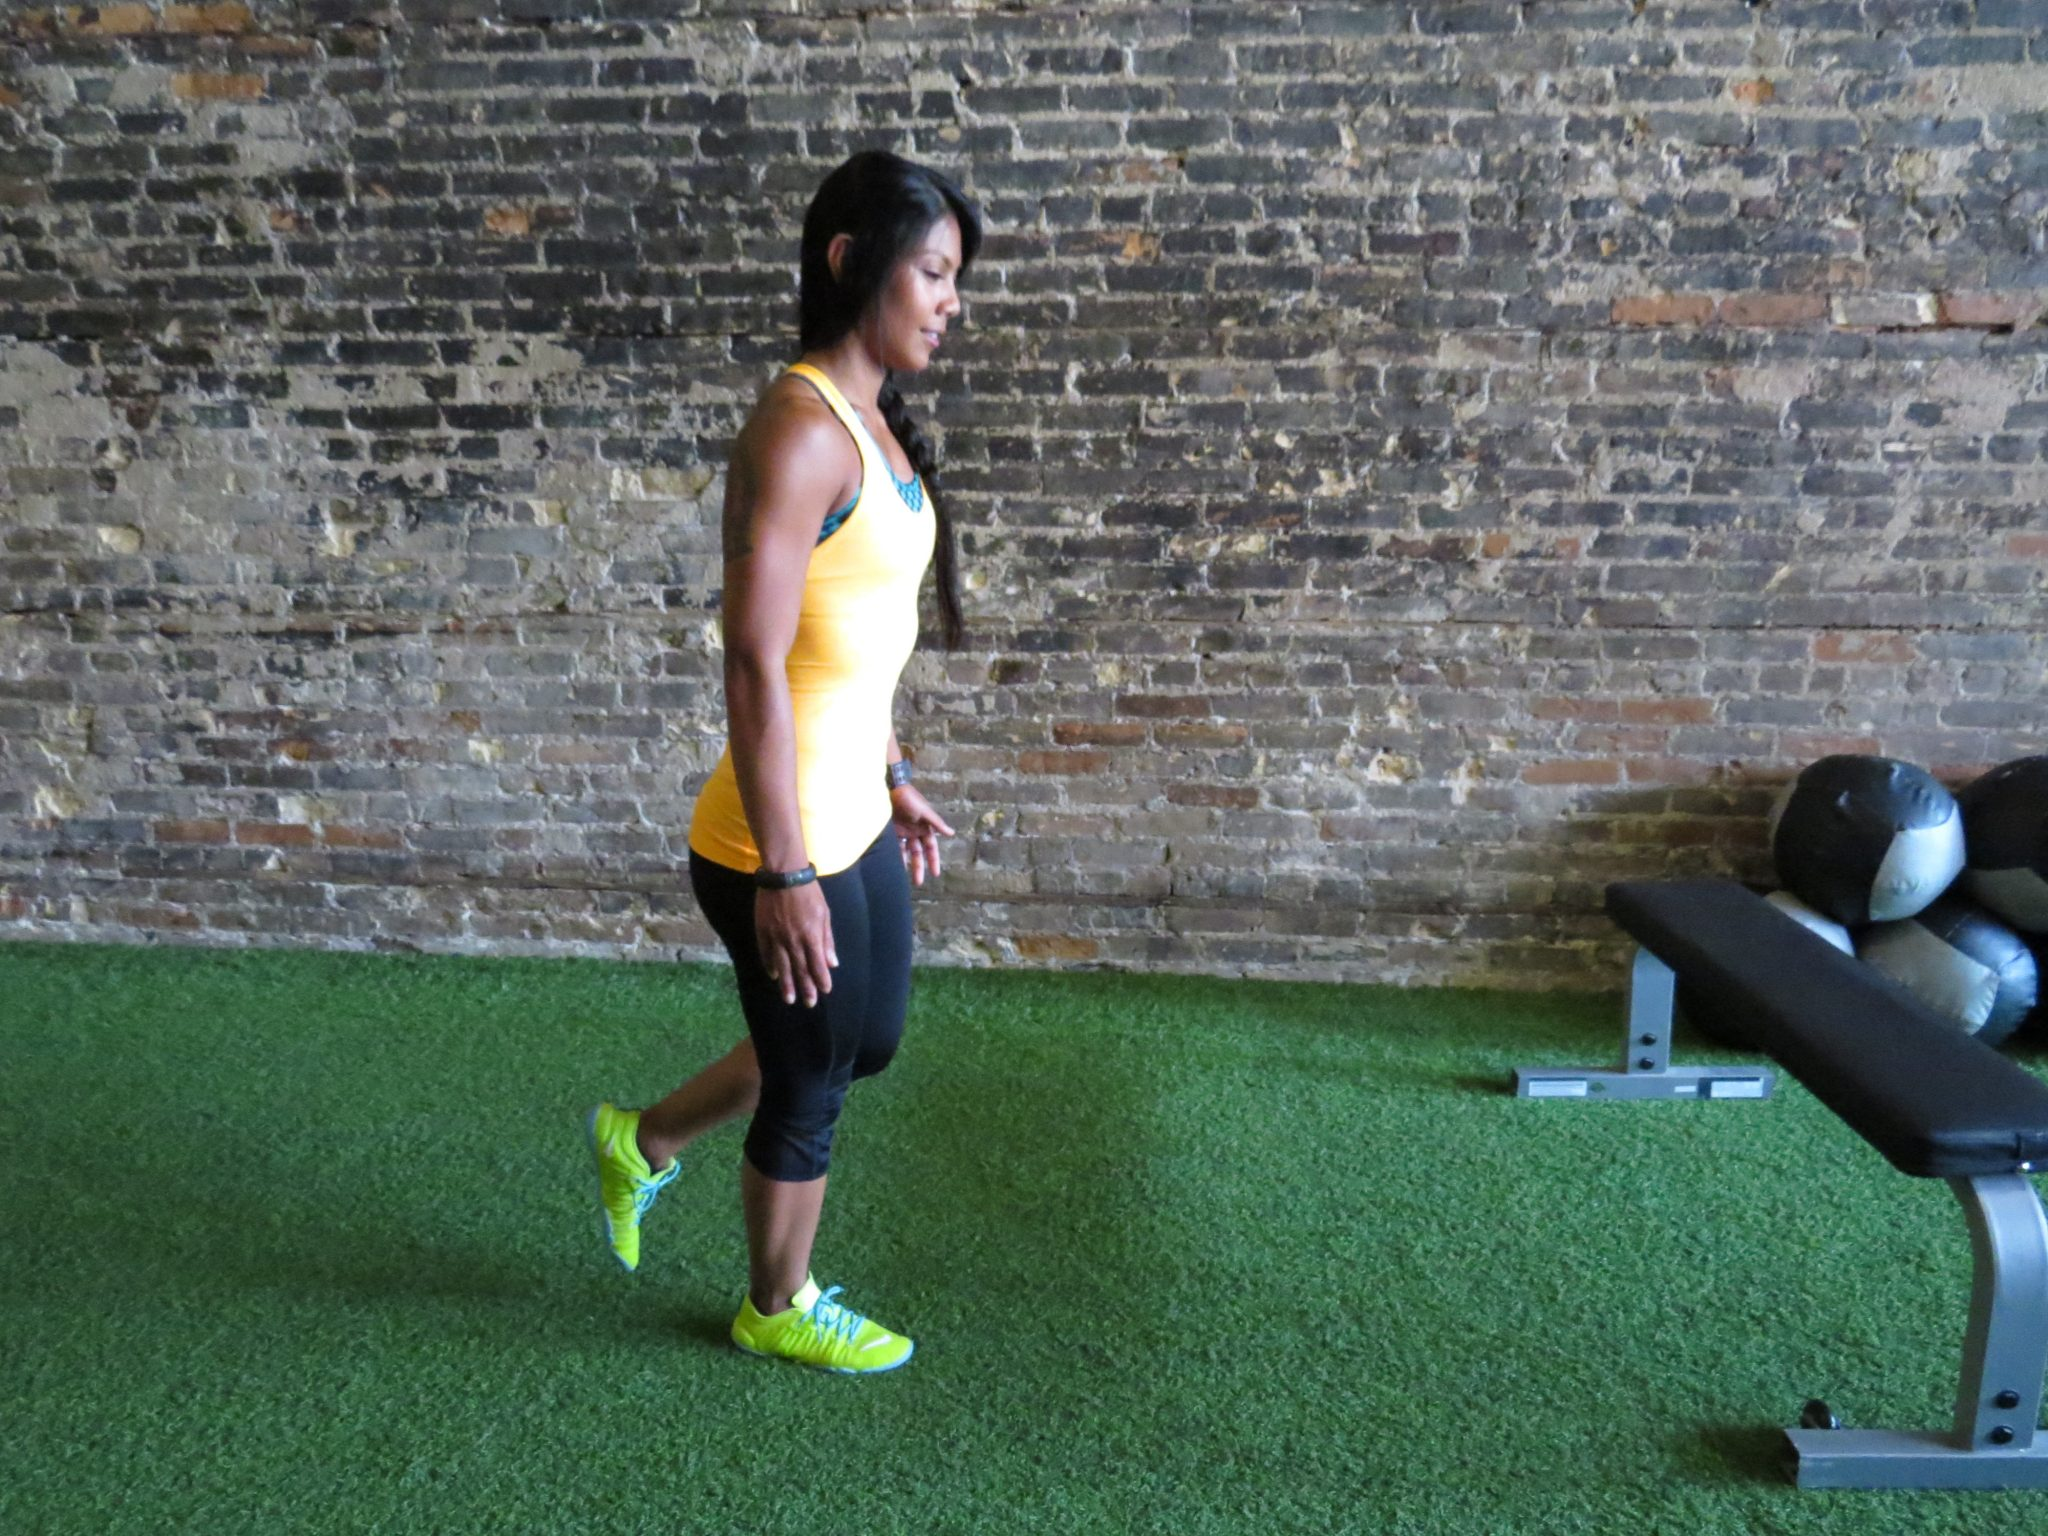 asweatlife fabfitchicago crosstownfitness workout at home no equipment workout dead life